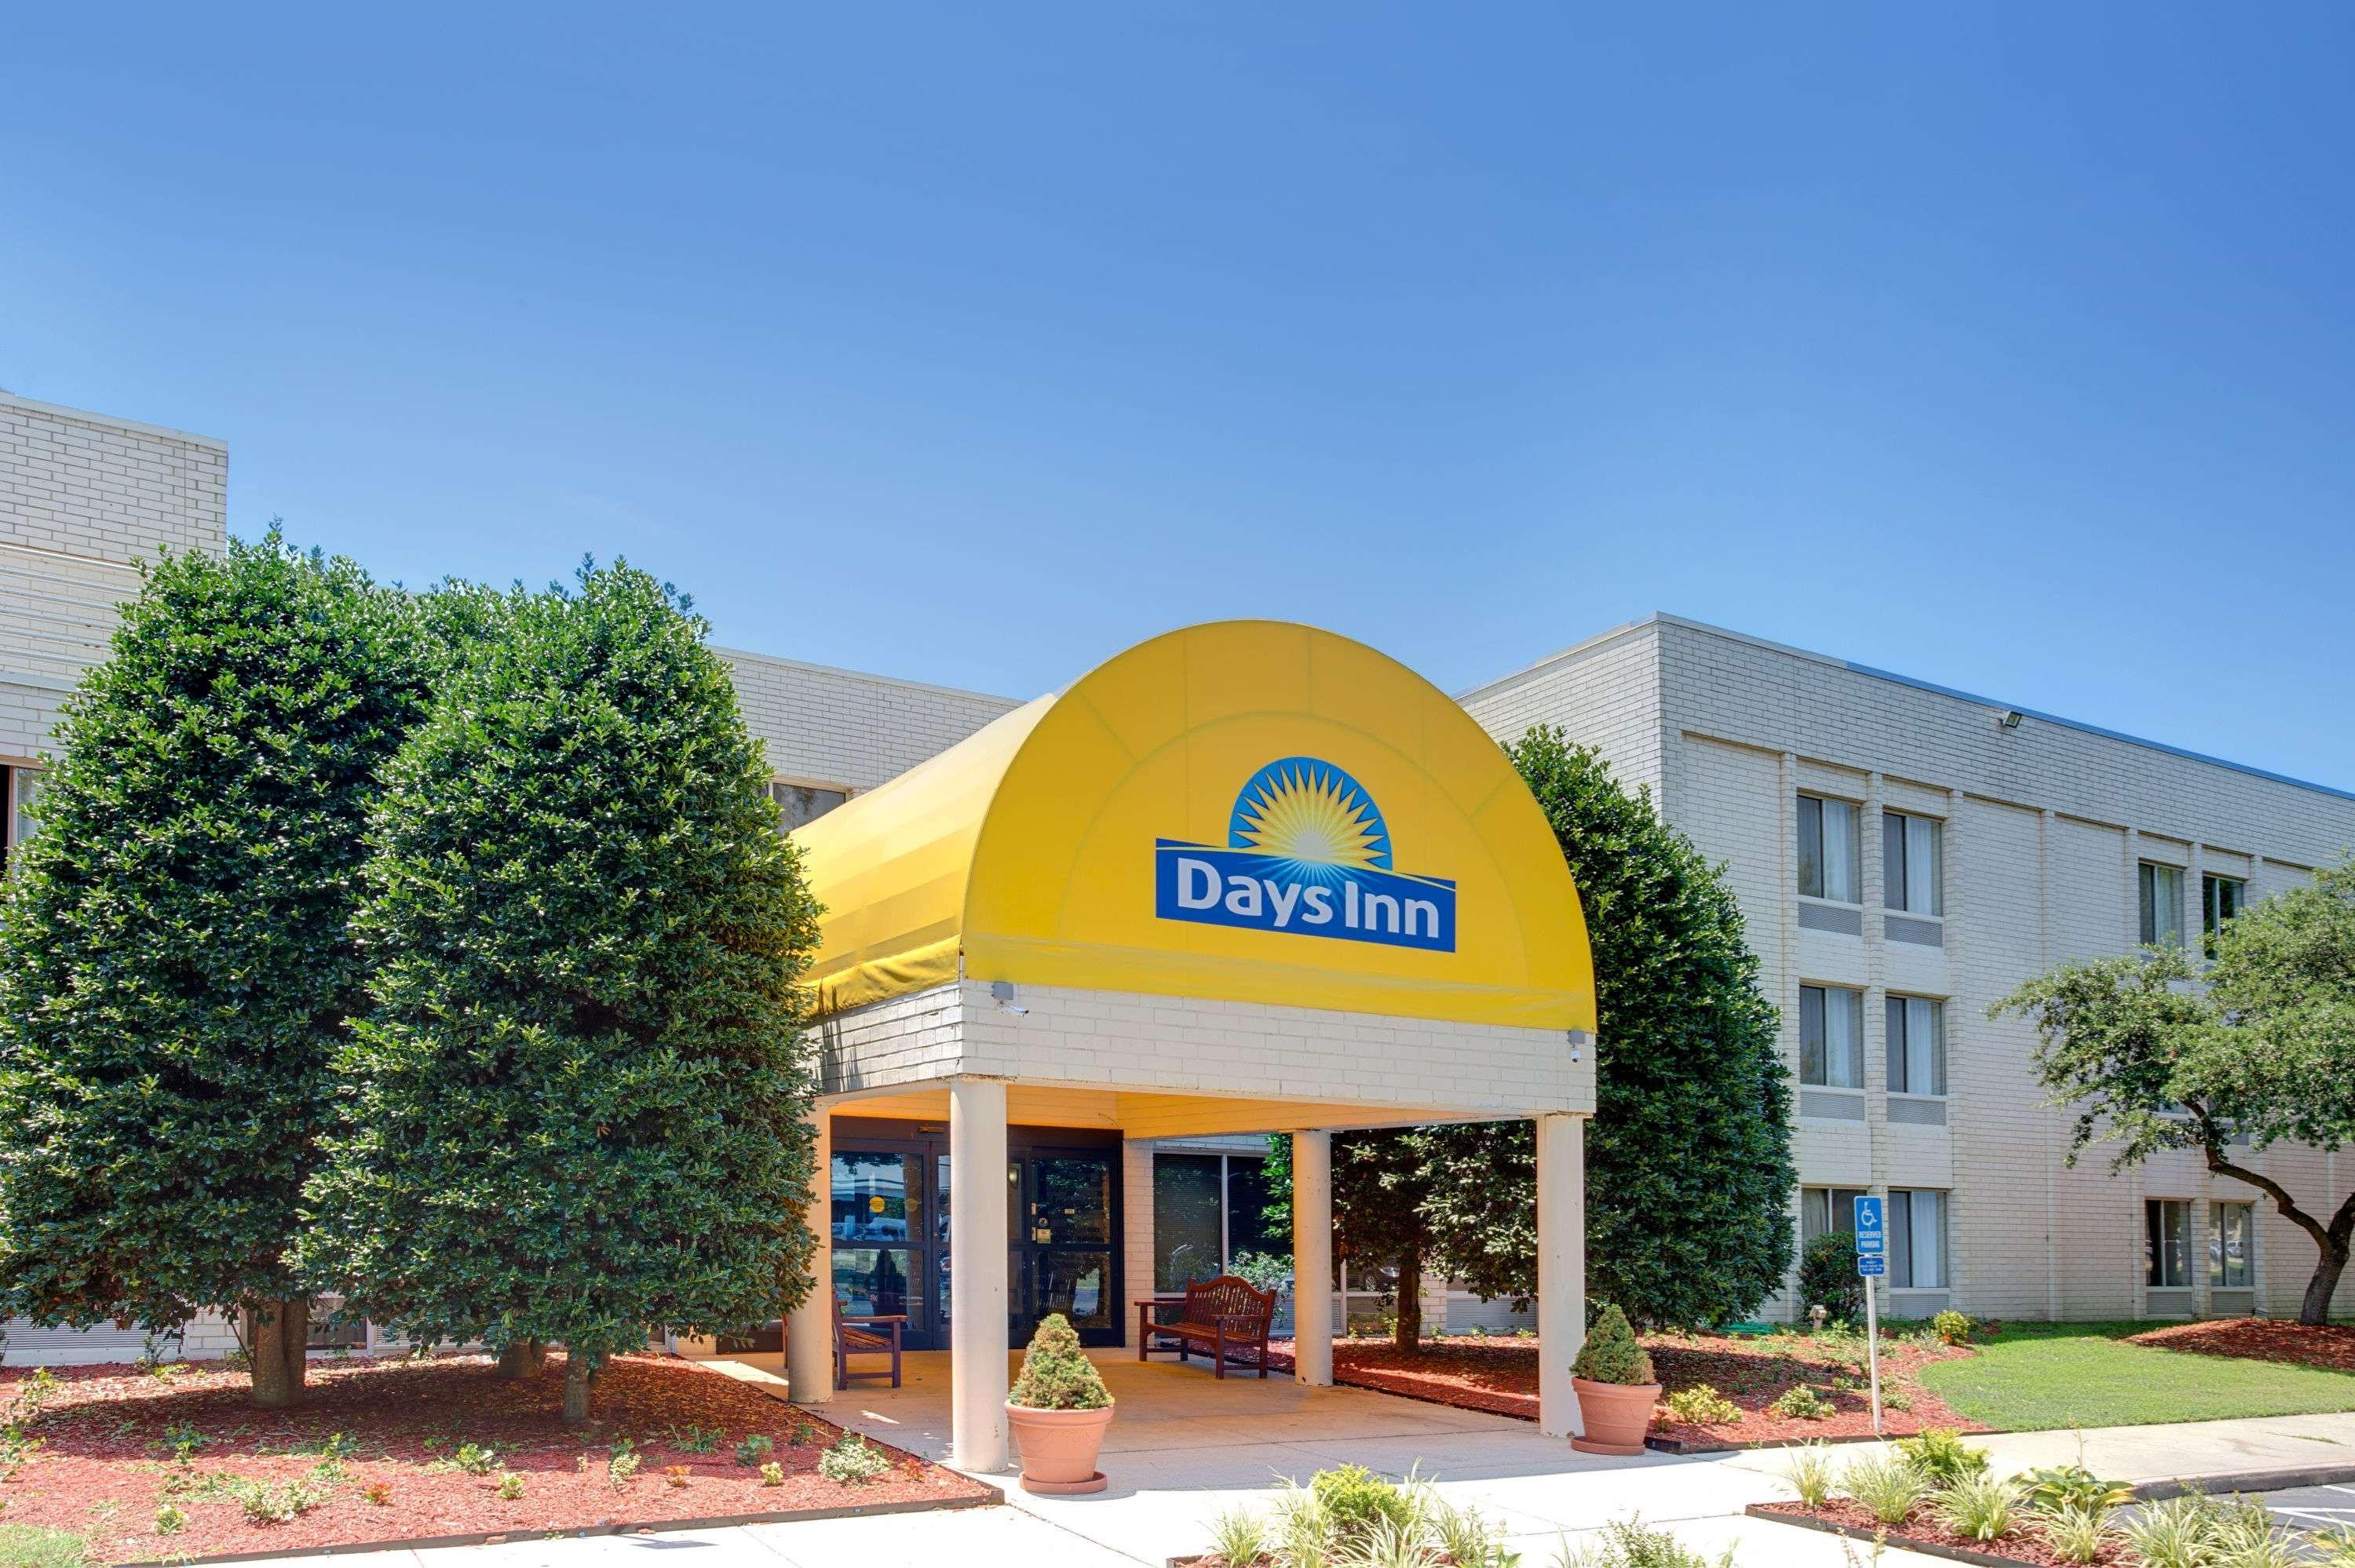 Days Inn by Wyndham Newport News City Ctr, Newport News